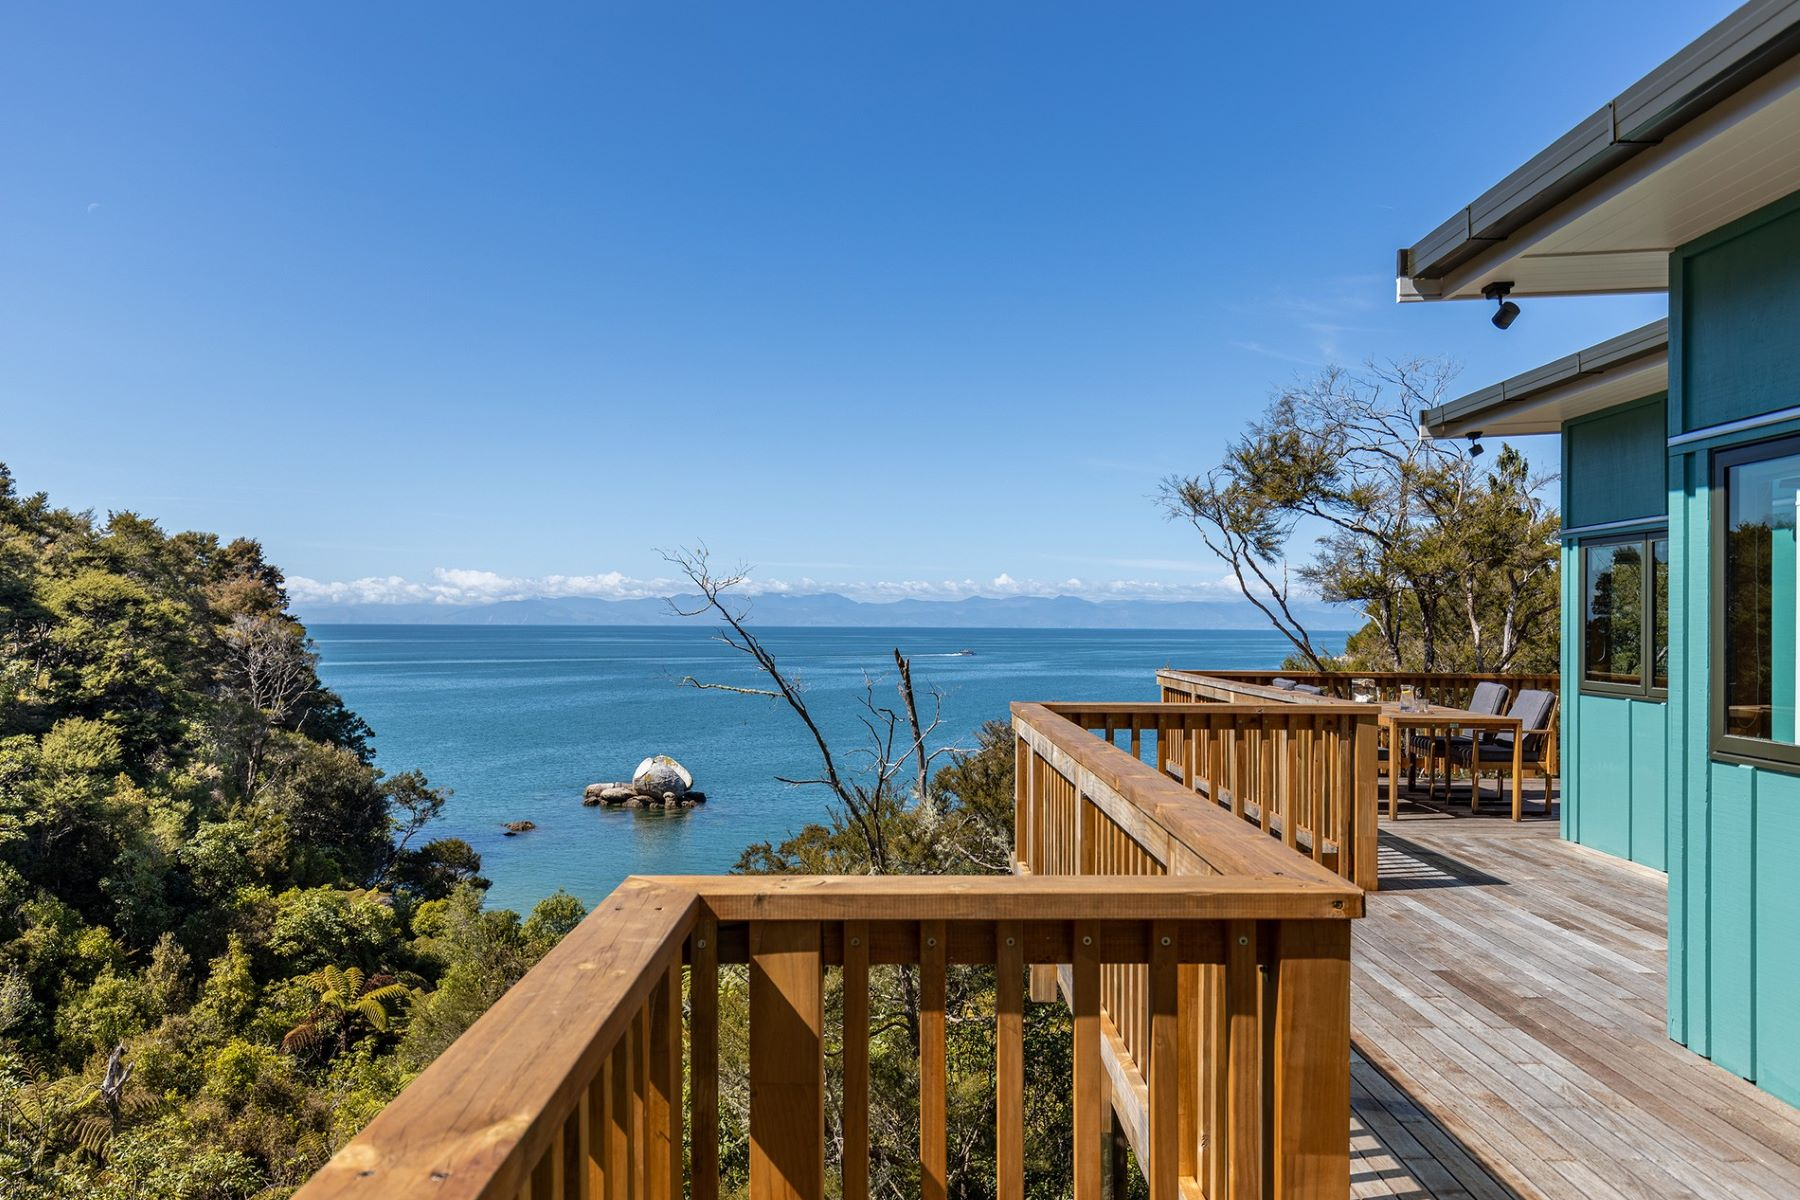 Additional photo for property listing at Moonraker House 11 Moonraker Way Other Nelson, Nelson 7197 New Zealand